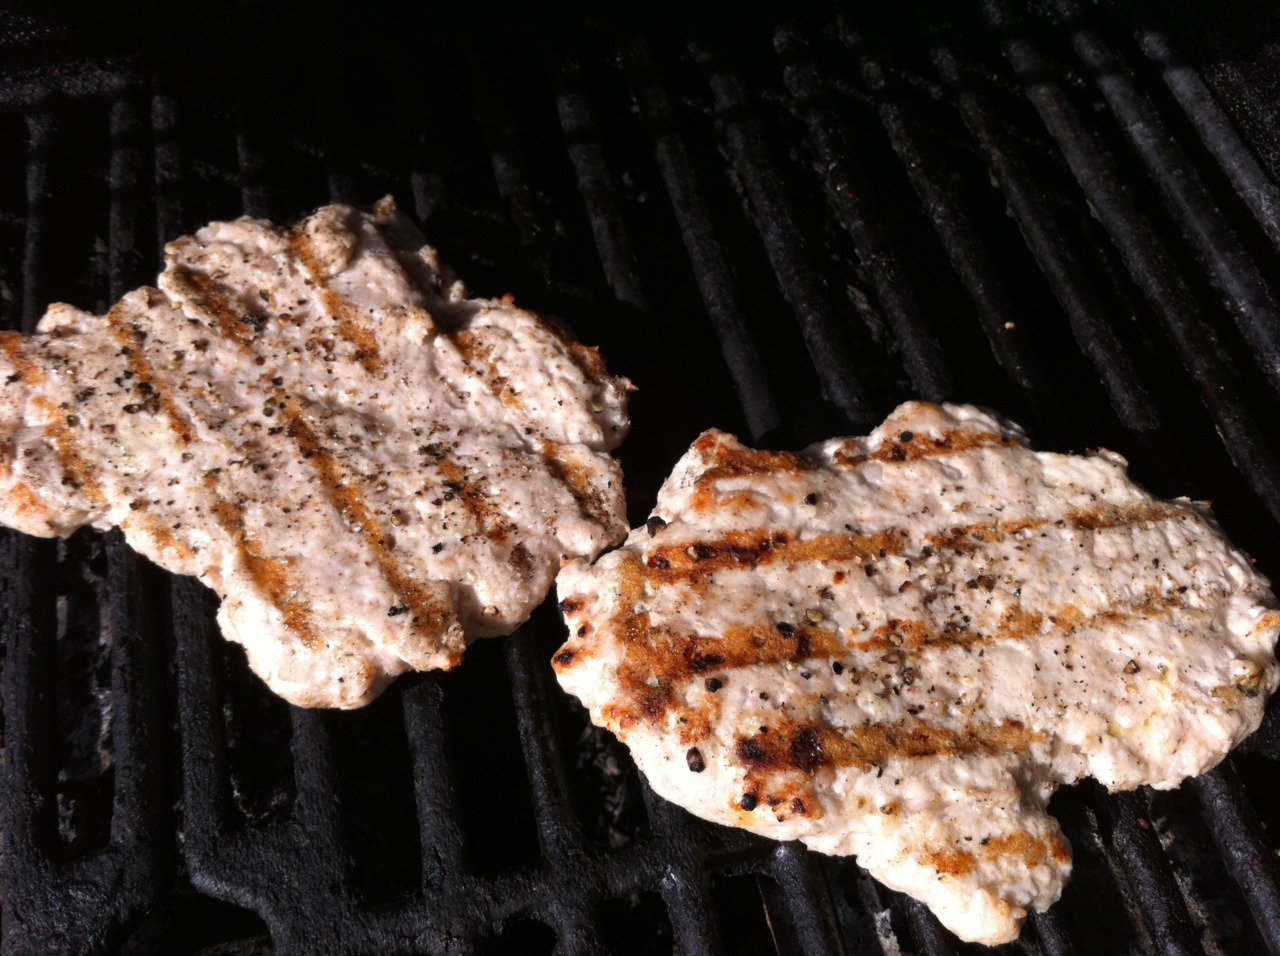 Grilled turkey patties inspired by Chicken Adana.